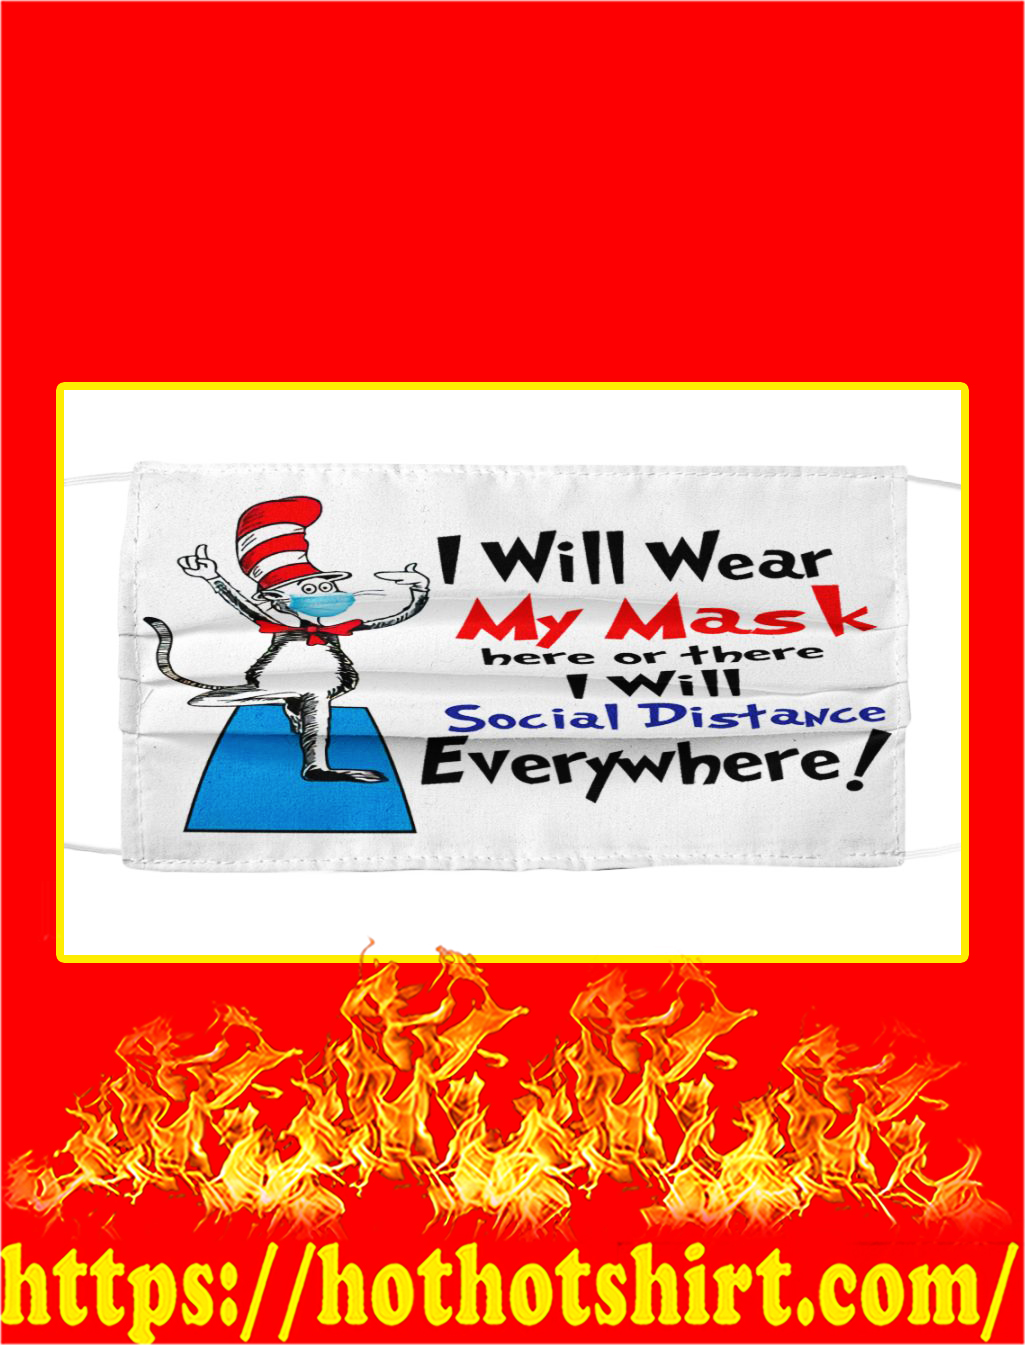 Dr seuss i will wear my mask here or there i will social distance everywhere face mask